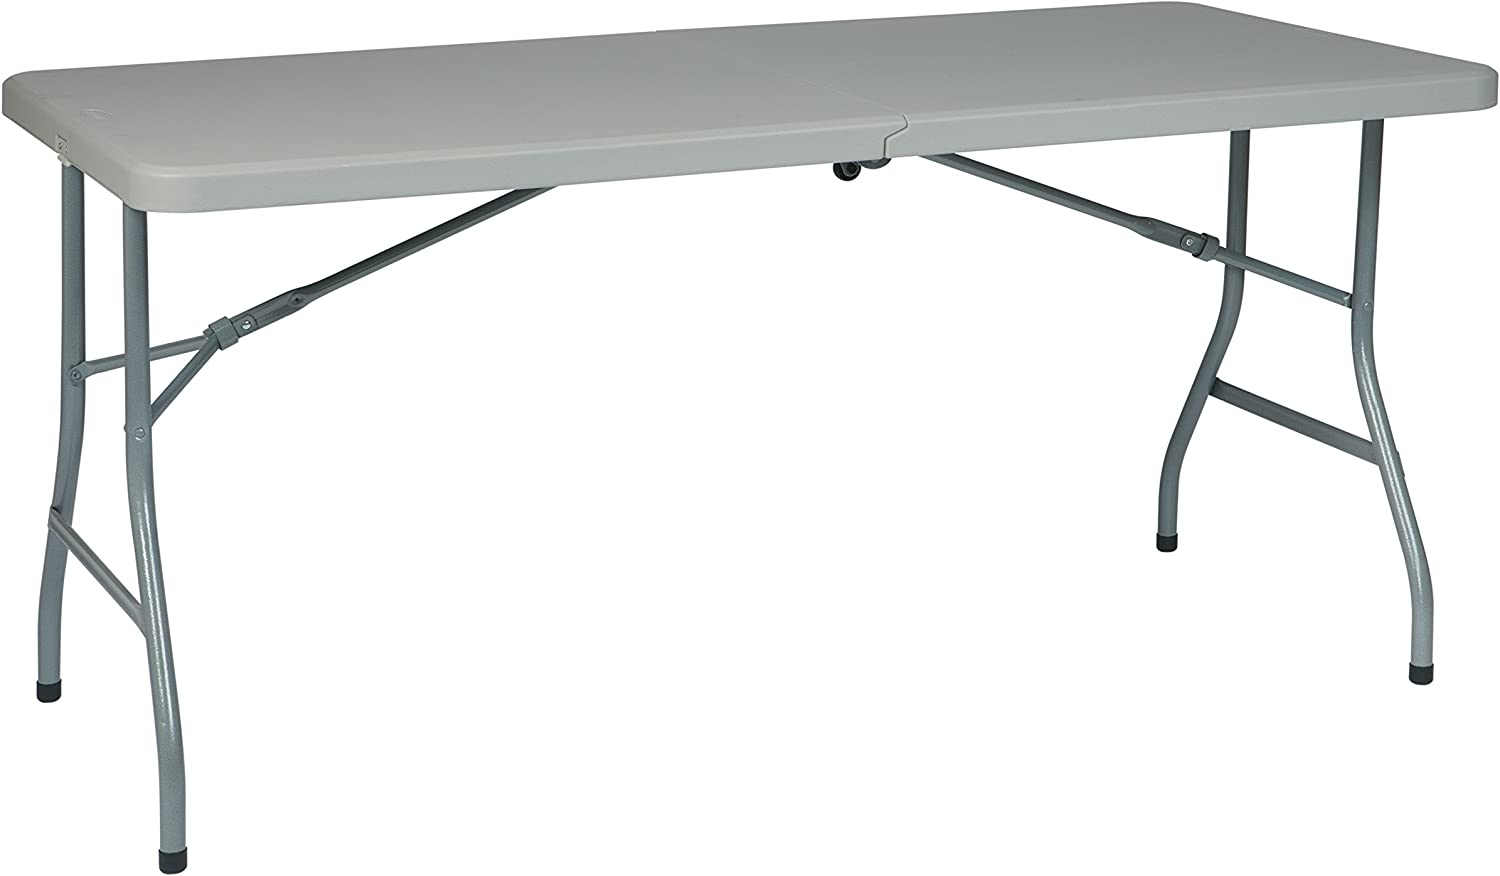 Office Star Resin Multipurpose Rectangle Table, 5-Feet Long, Center Folding with Wheels